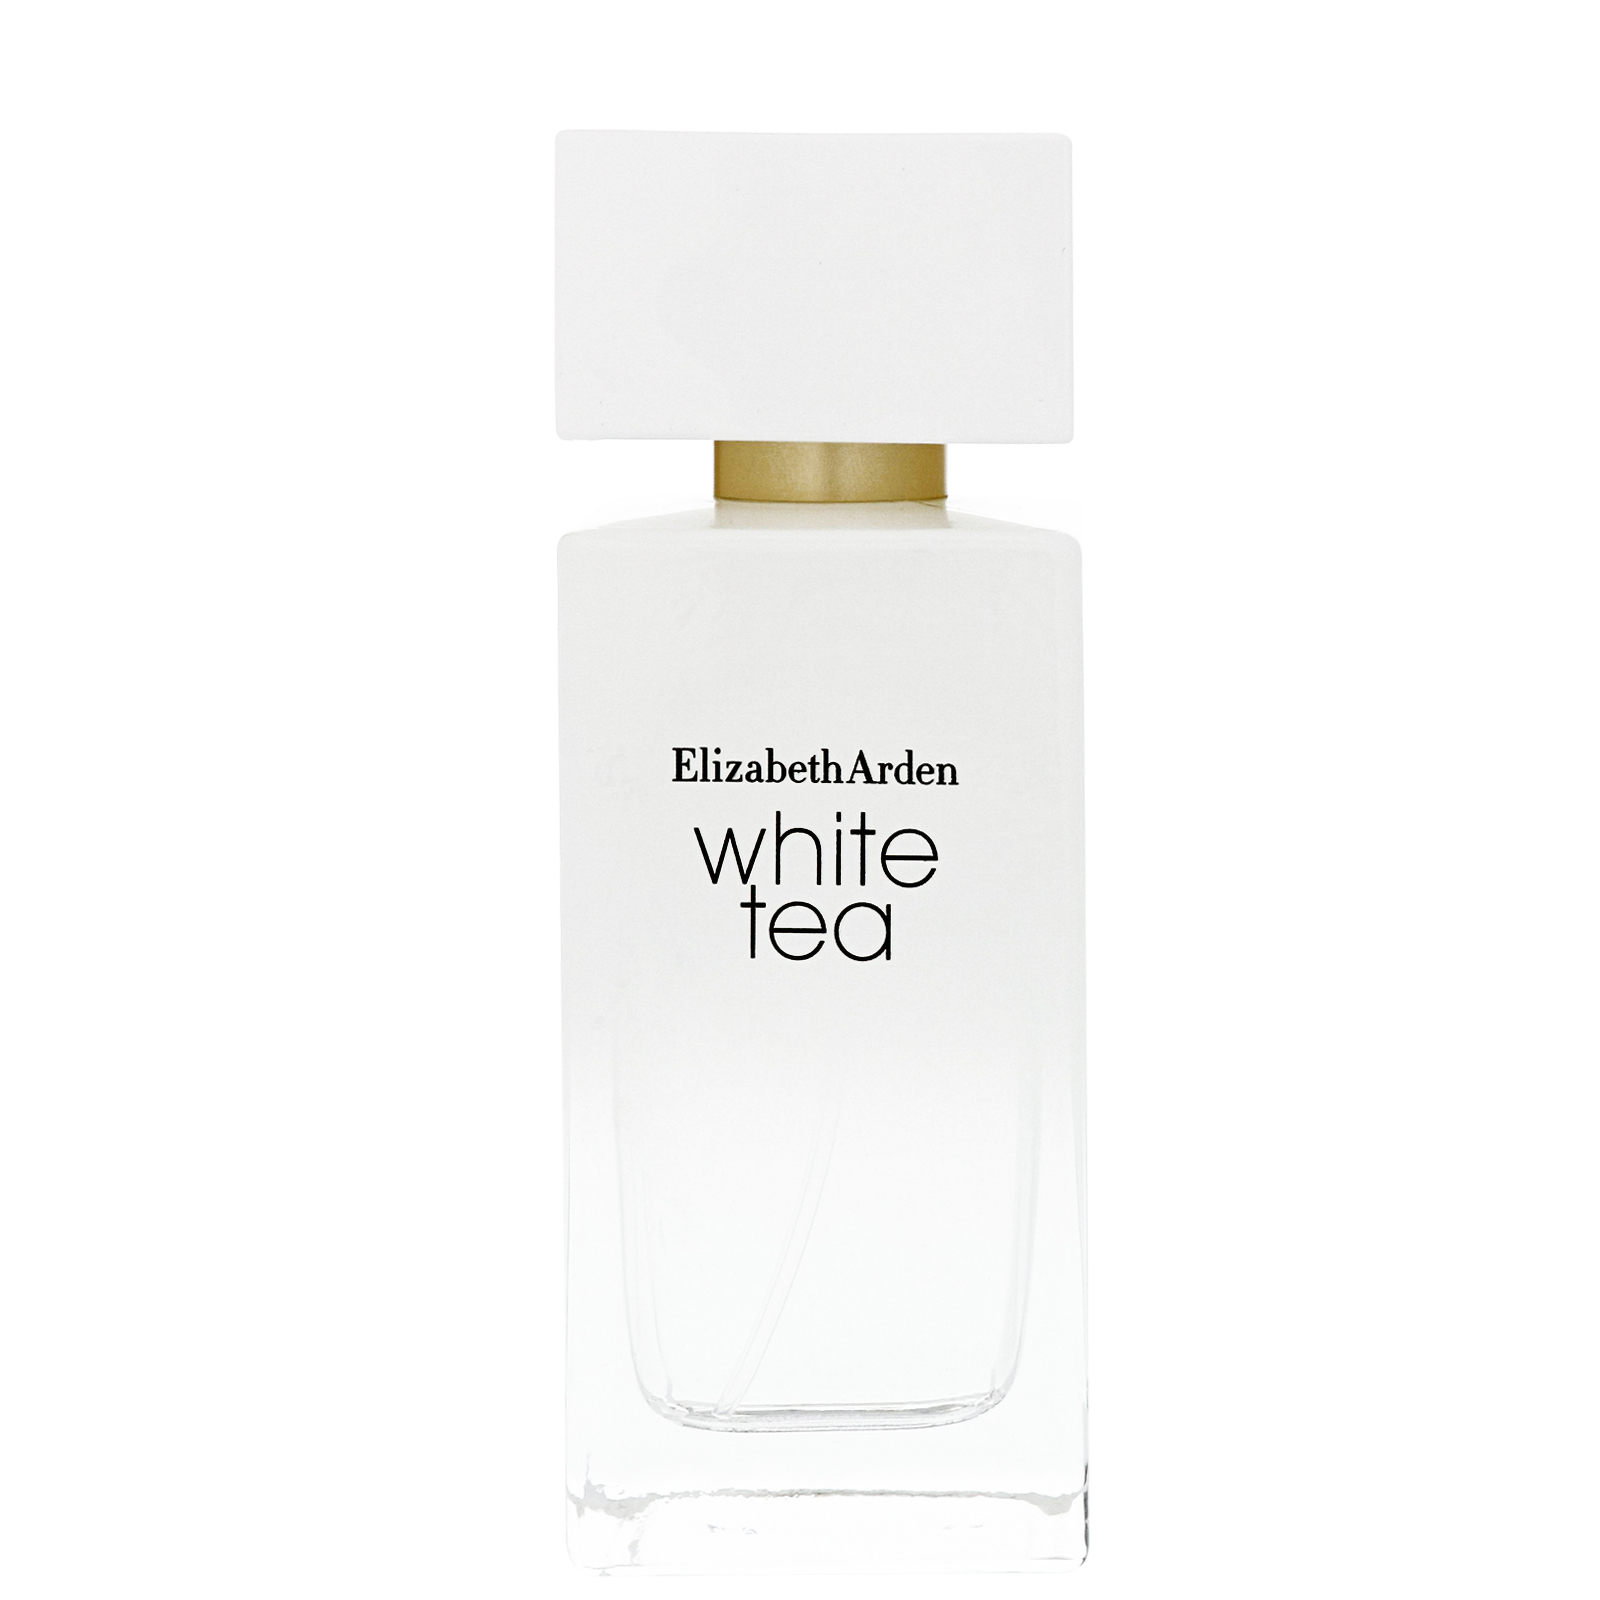 Elizabeth Arden White Tea Eau de Toilette Spray 50ml / 1.7 fl.oz.